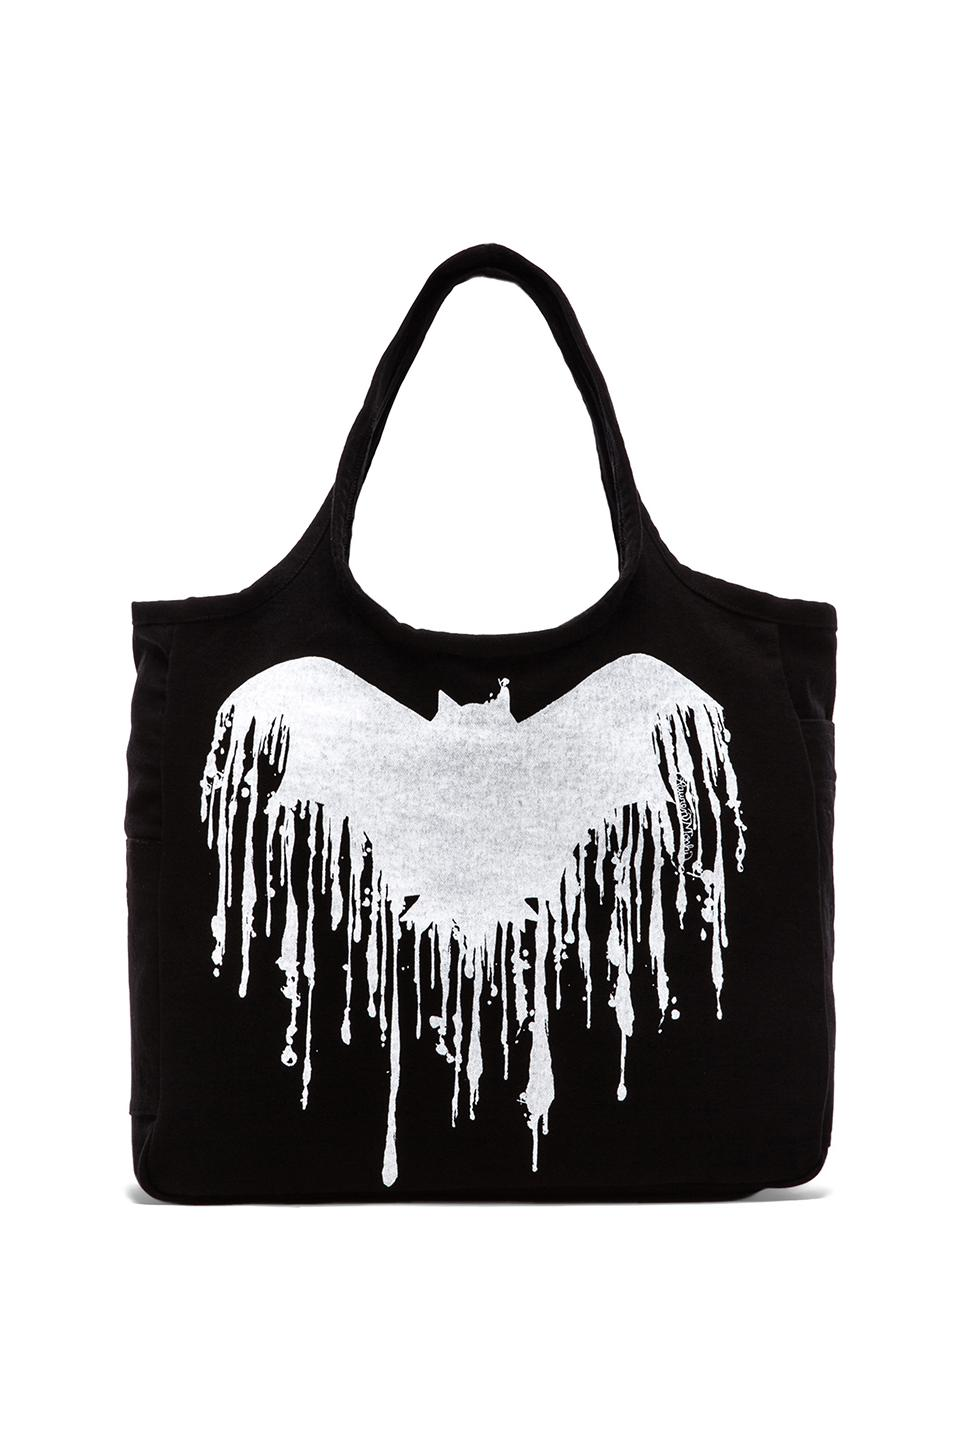 Lauren Moshi Taylor Dripping Bat Canvas Tote in Black